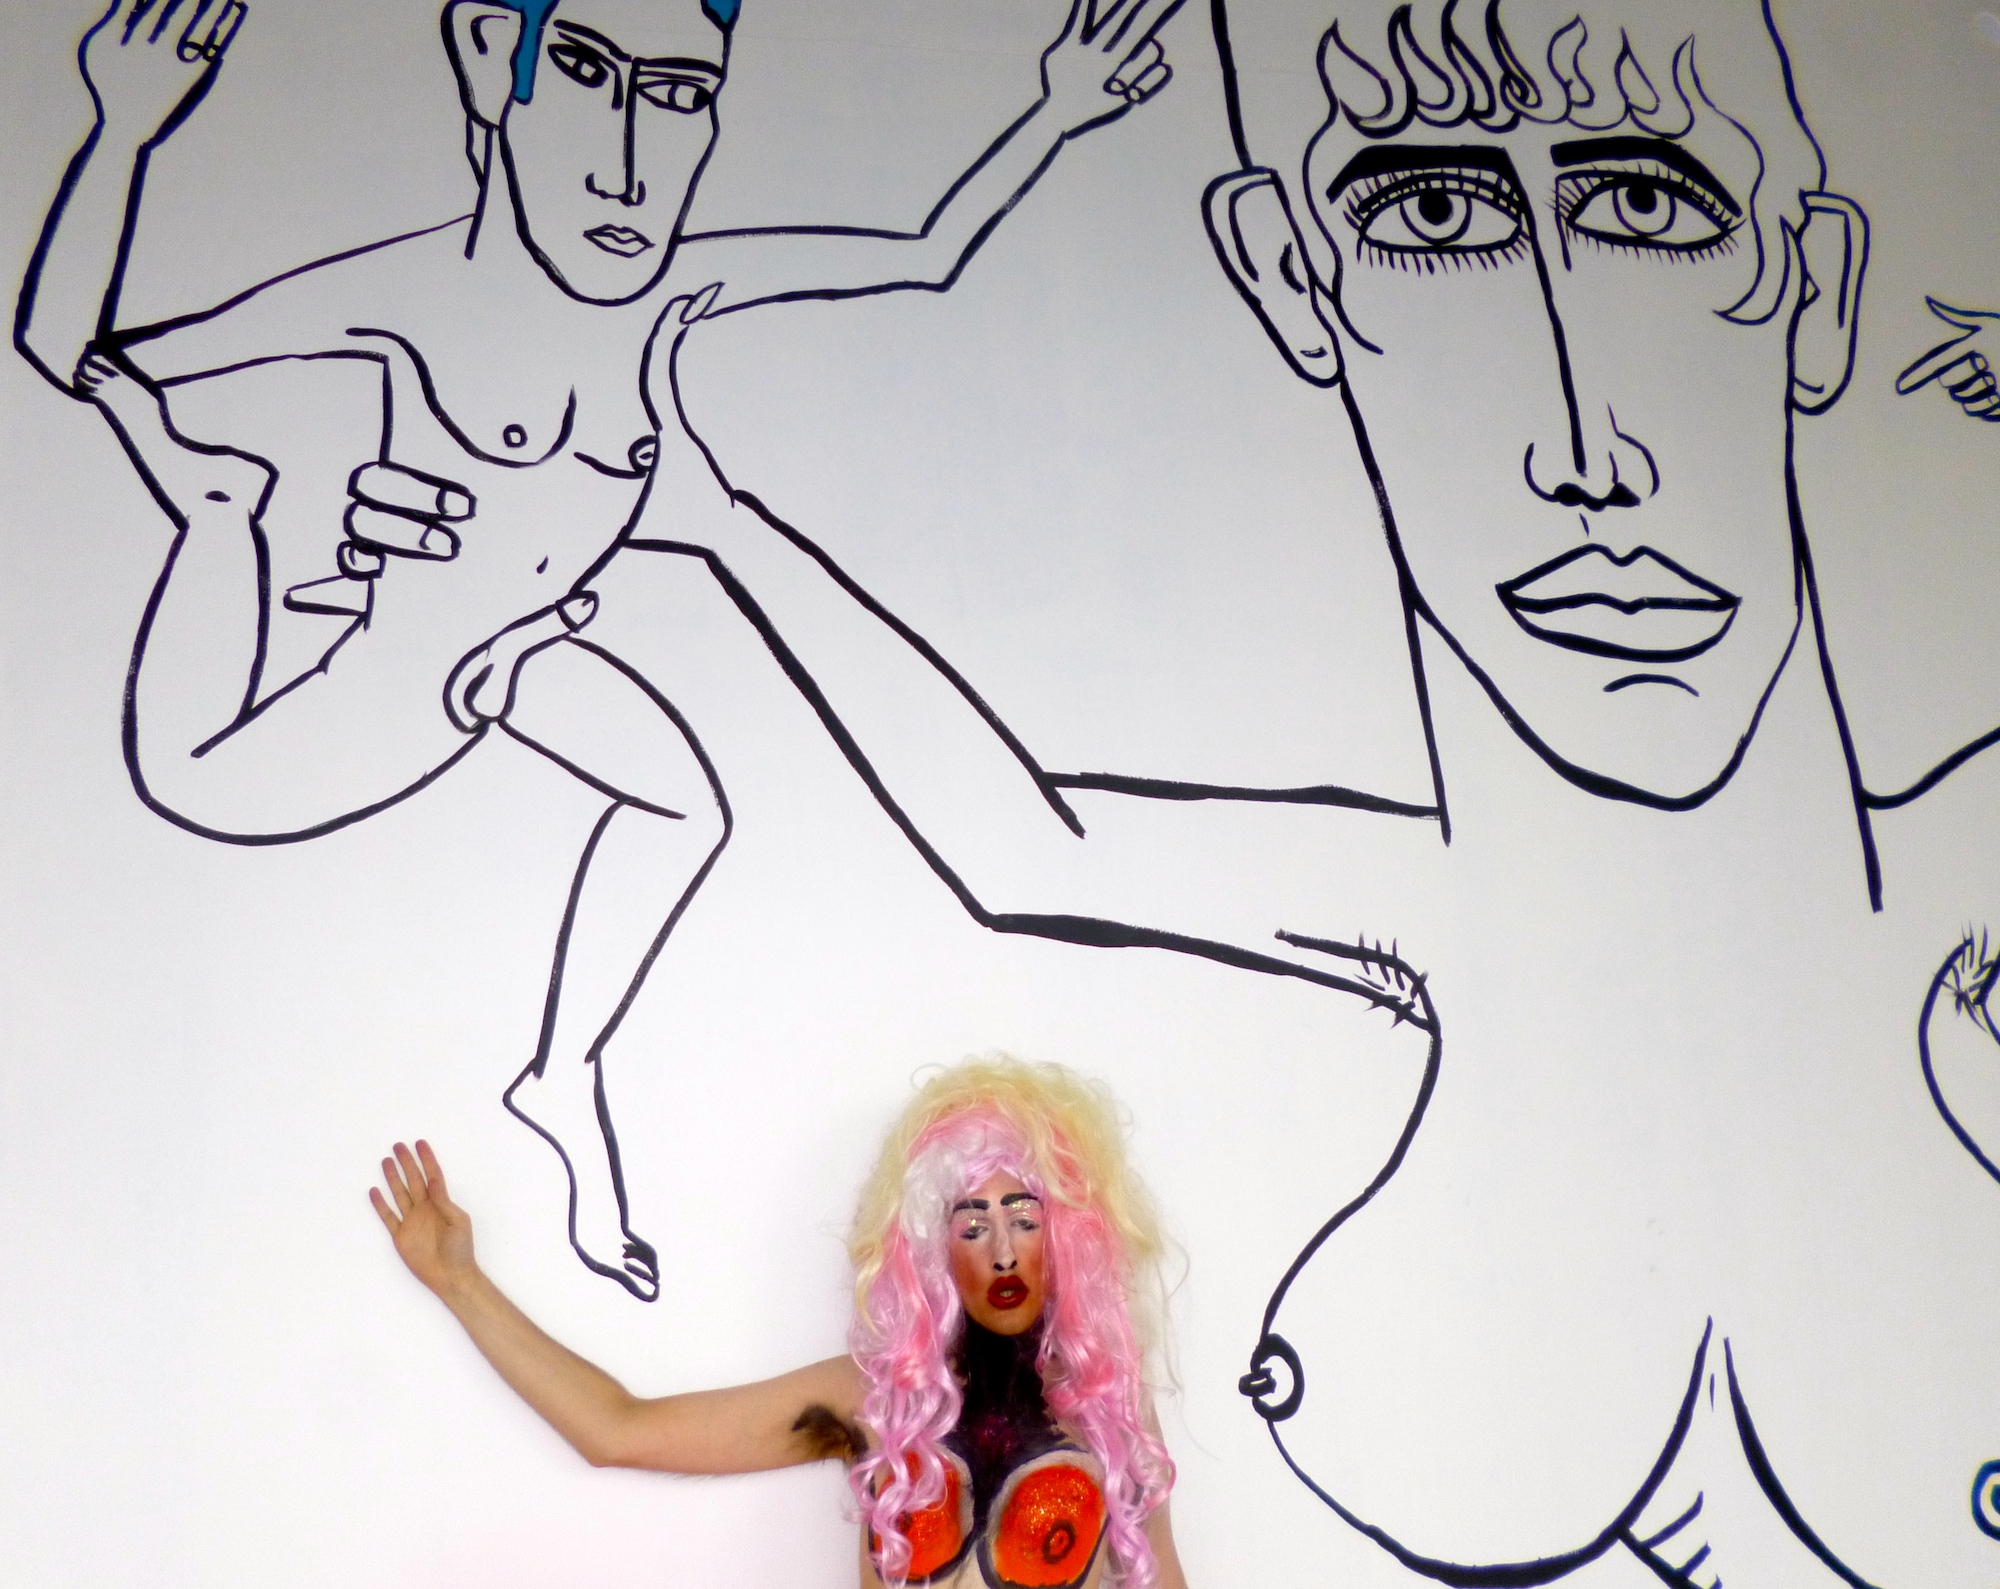 Paul Kindersley, #TheBritishAreCumming, film still, 2014. Courtesy the artist